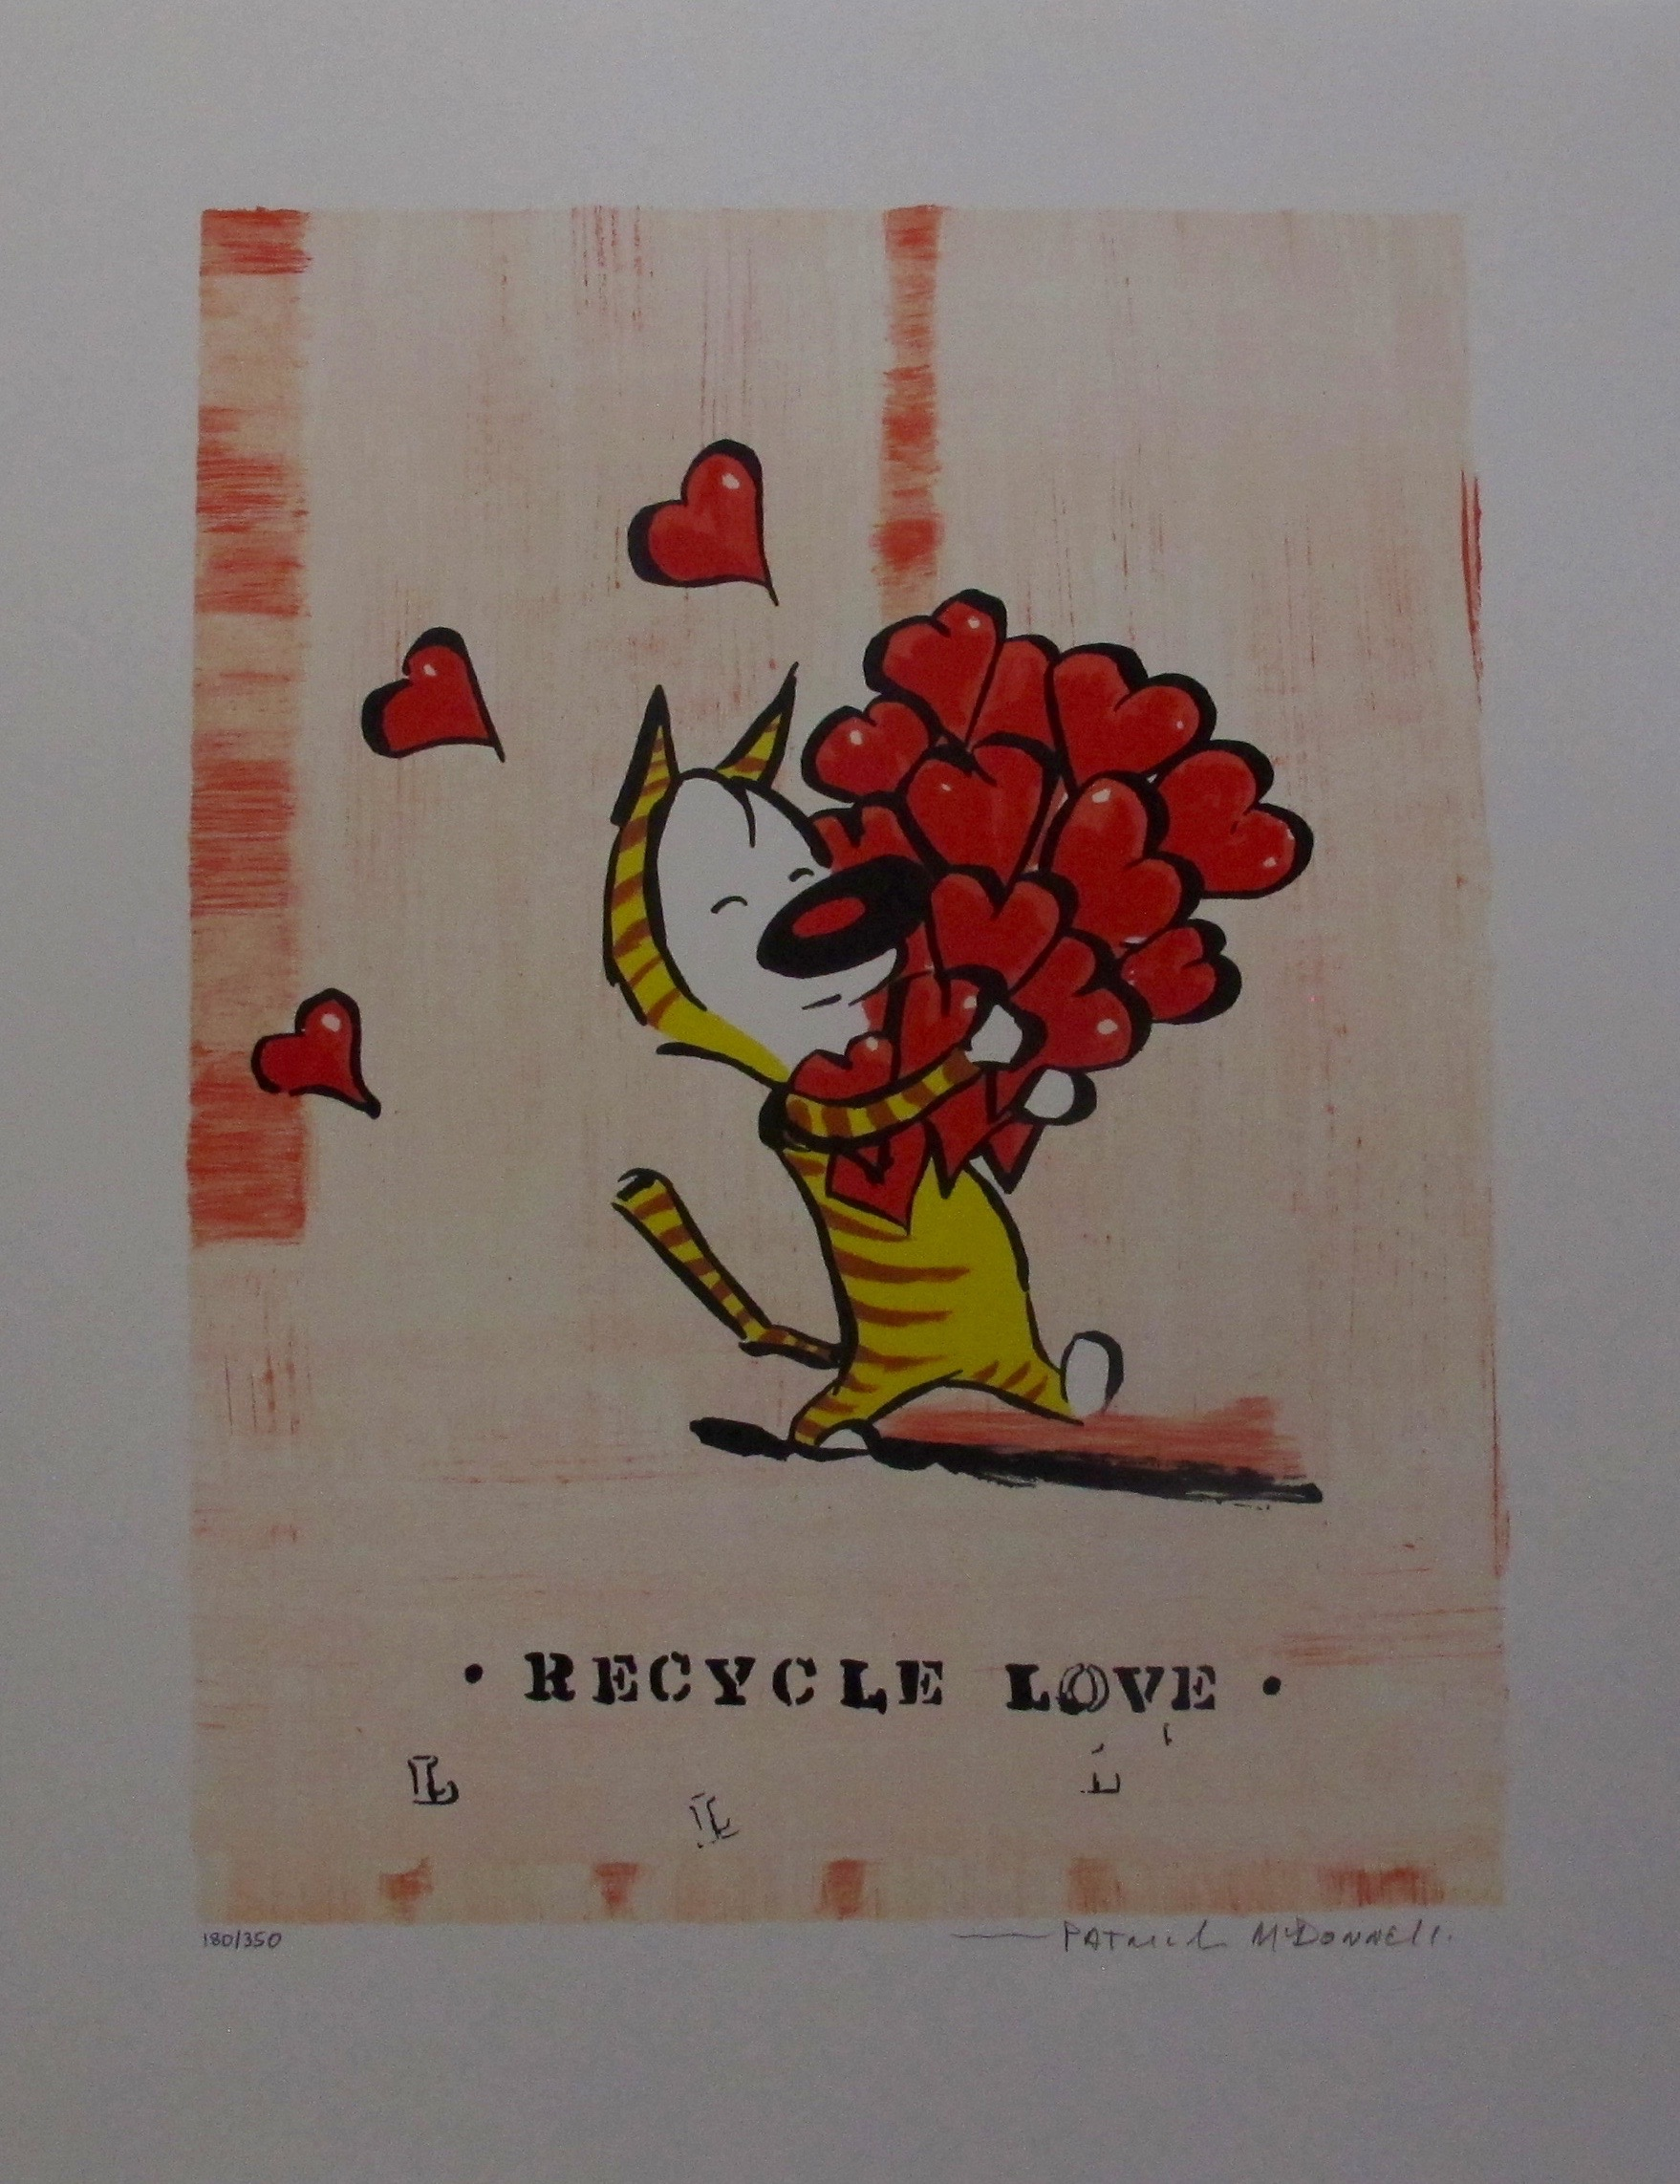 PATRICK MCDONNELL RECYCLE LOVE Hand Signed Limited Edition Lithograph